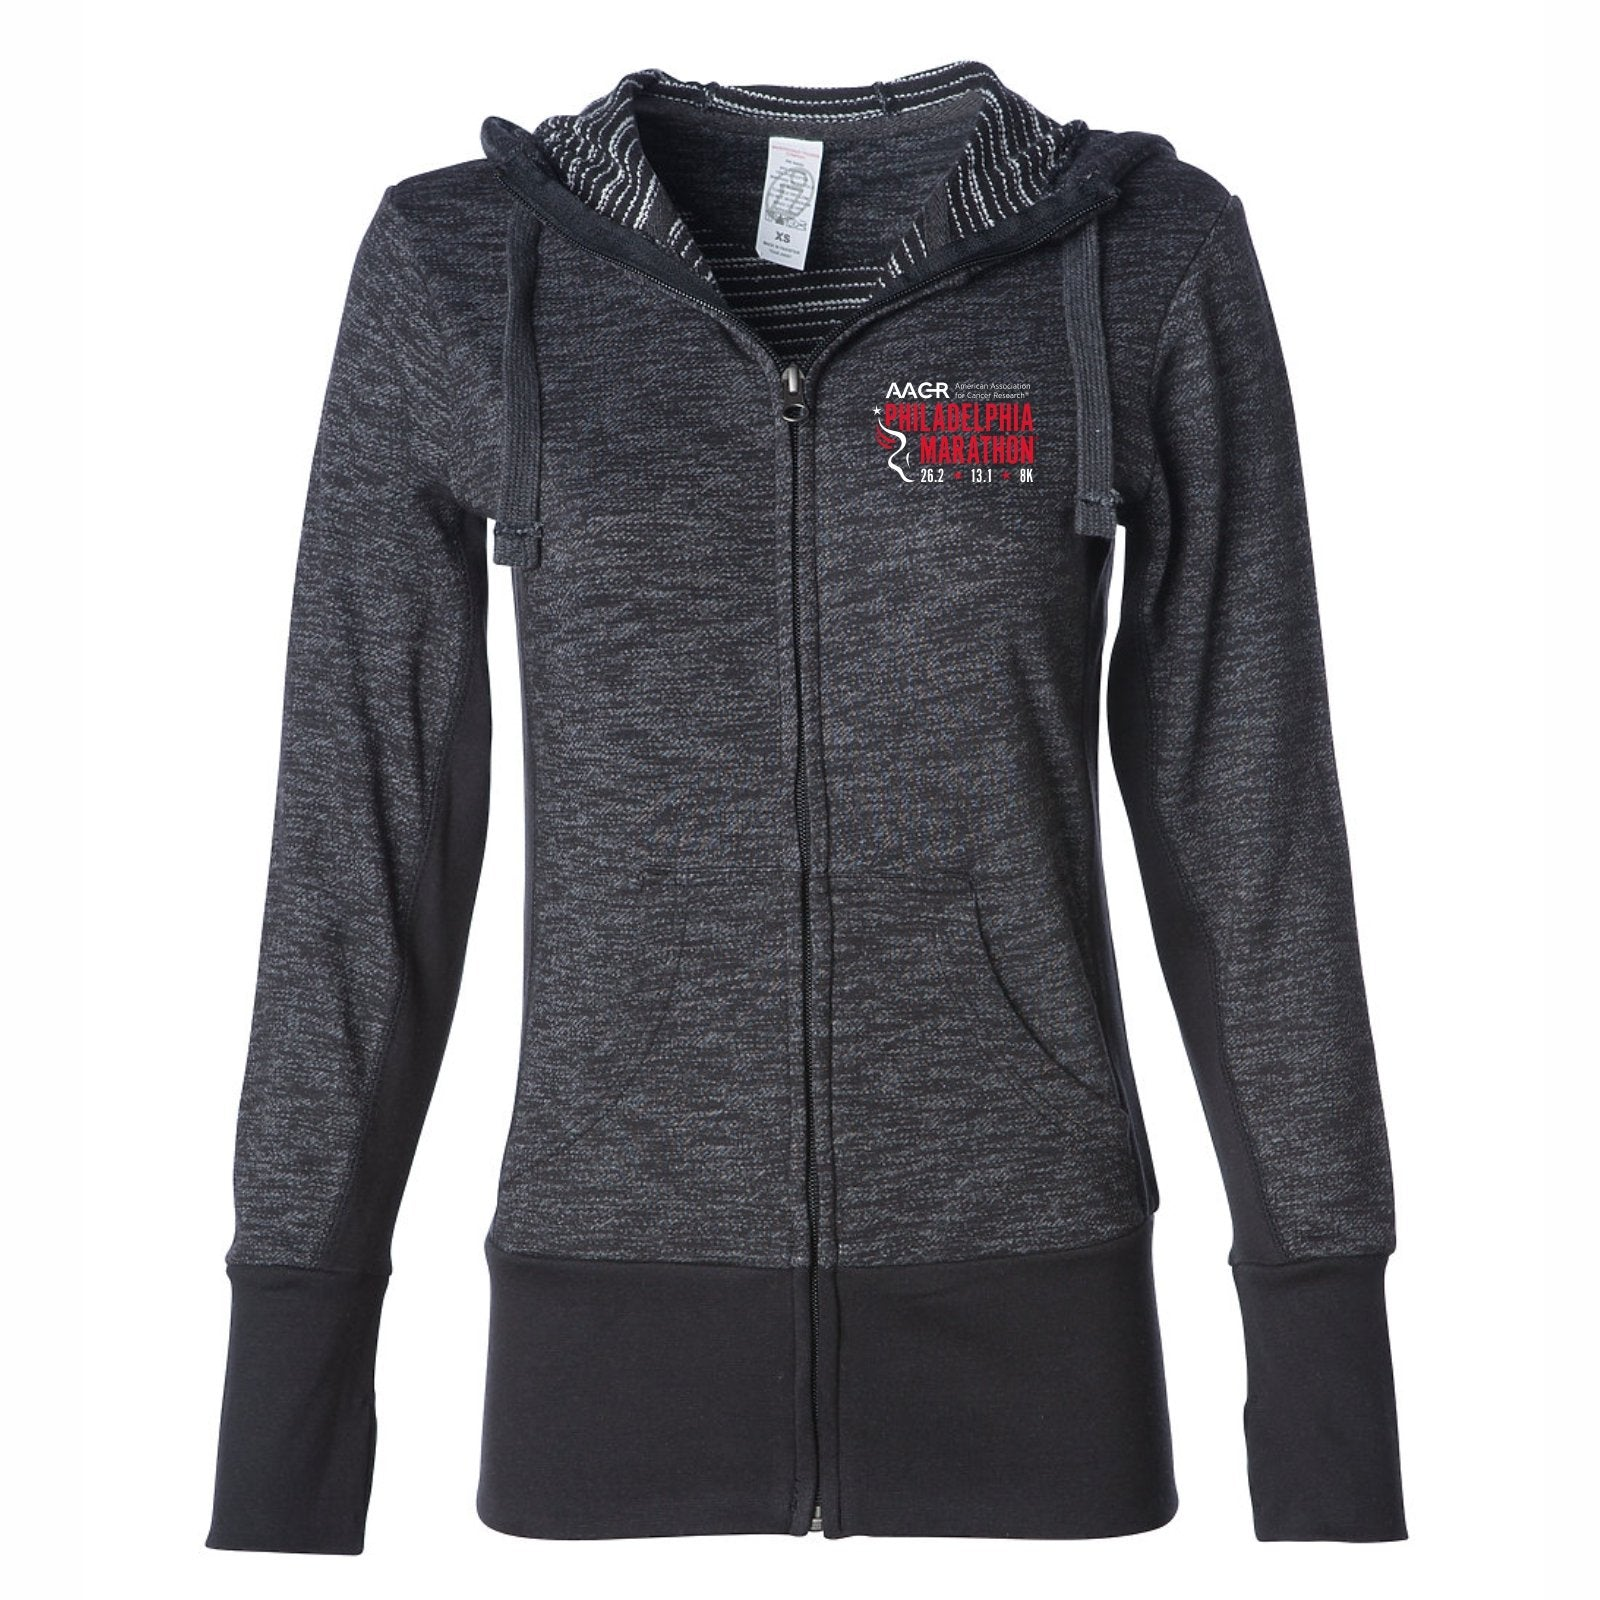 Women's Stripe French Terry Zip Hoody -Baja Black 'Left Chest Embr. Design' - AACR Philadelphia Marathon